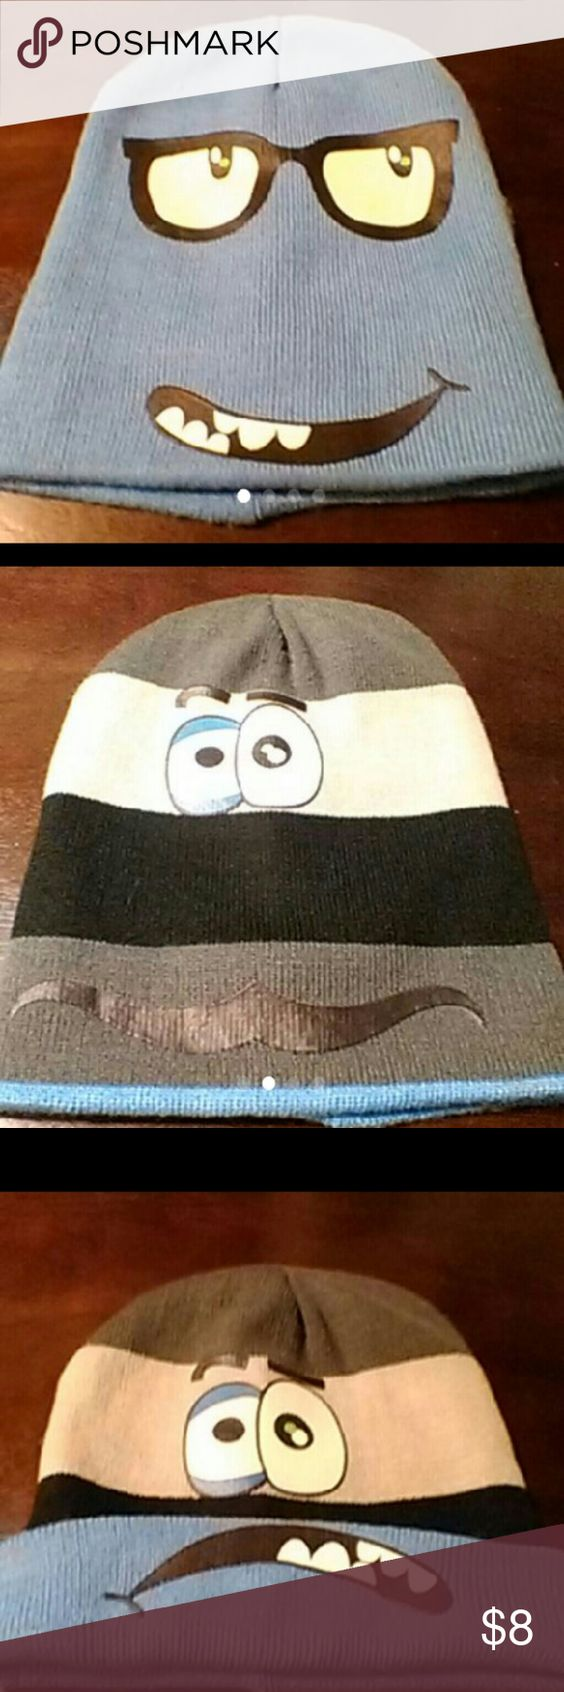 Boys reversible beanie Can make different faces with beanie since its reversible see pictures Accessories Hats